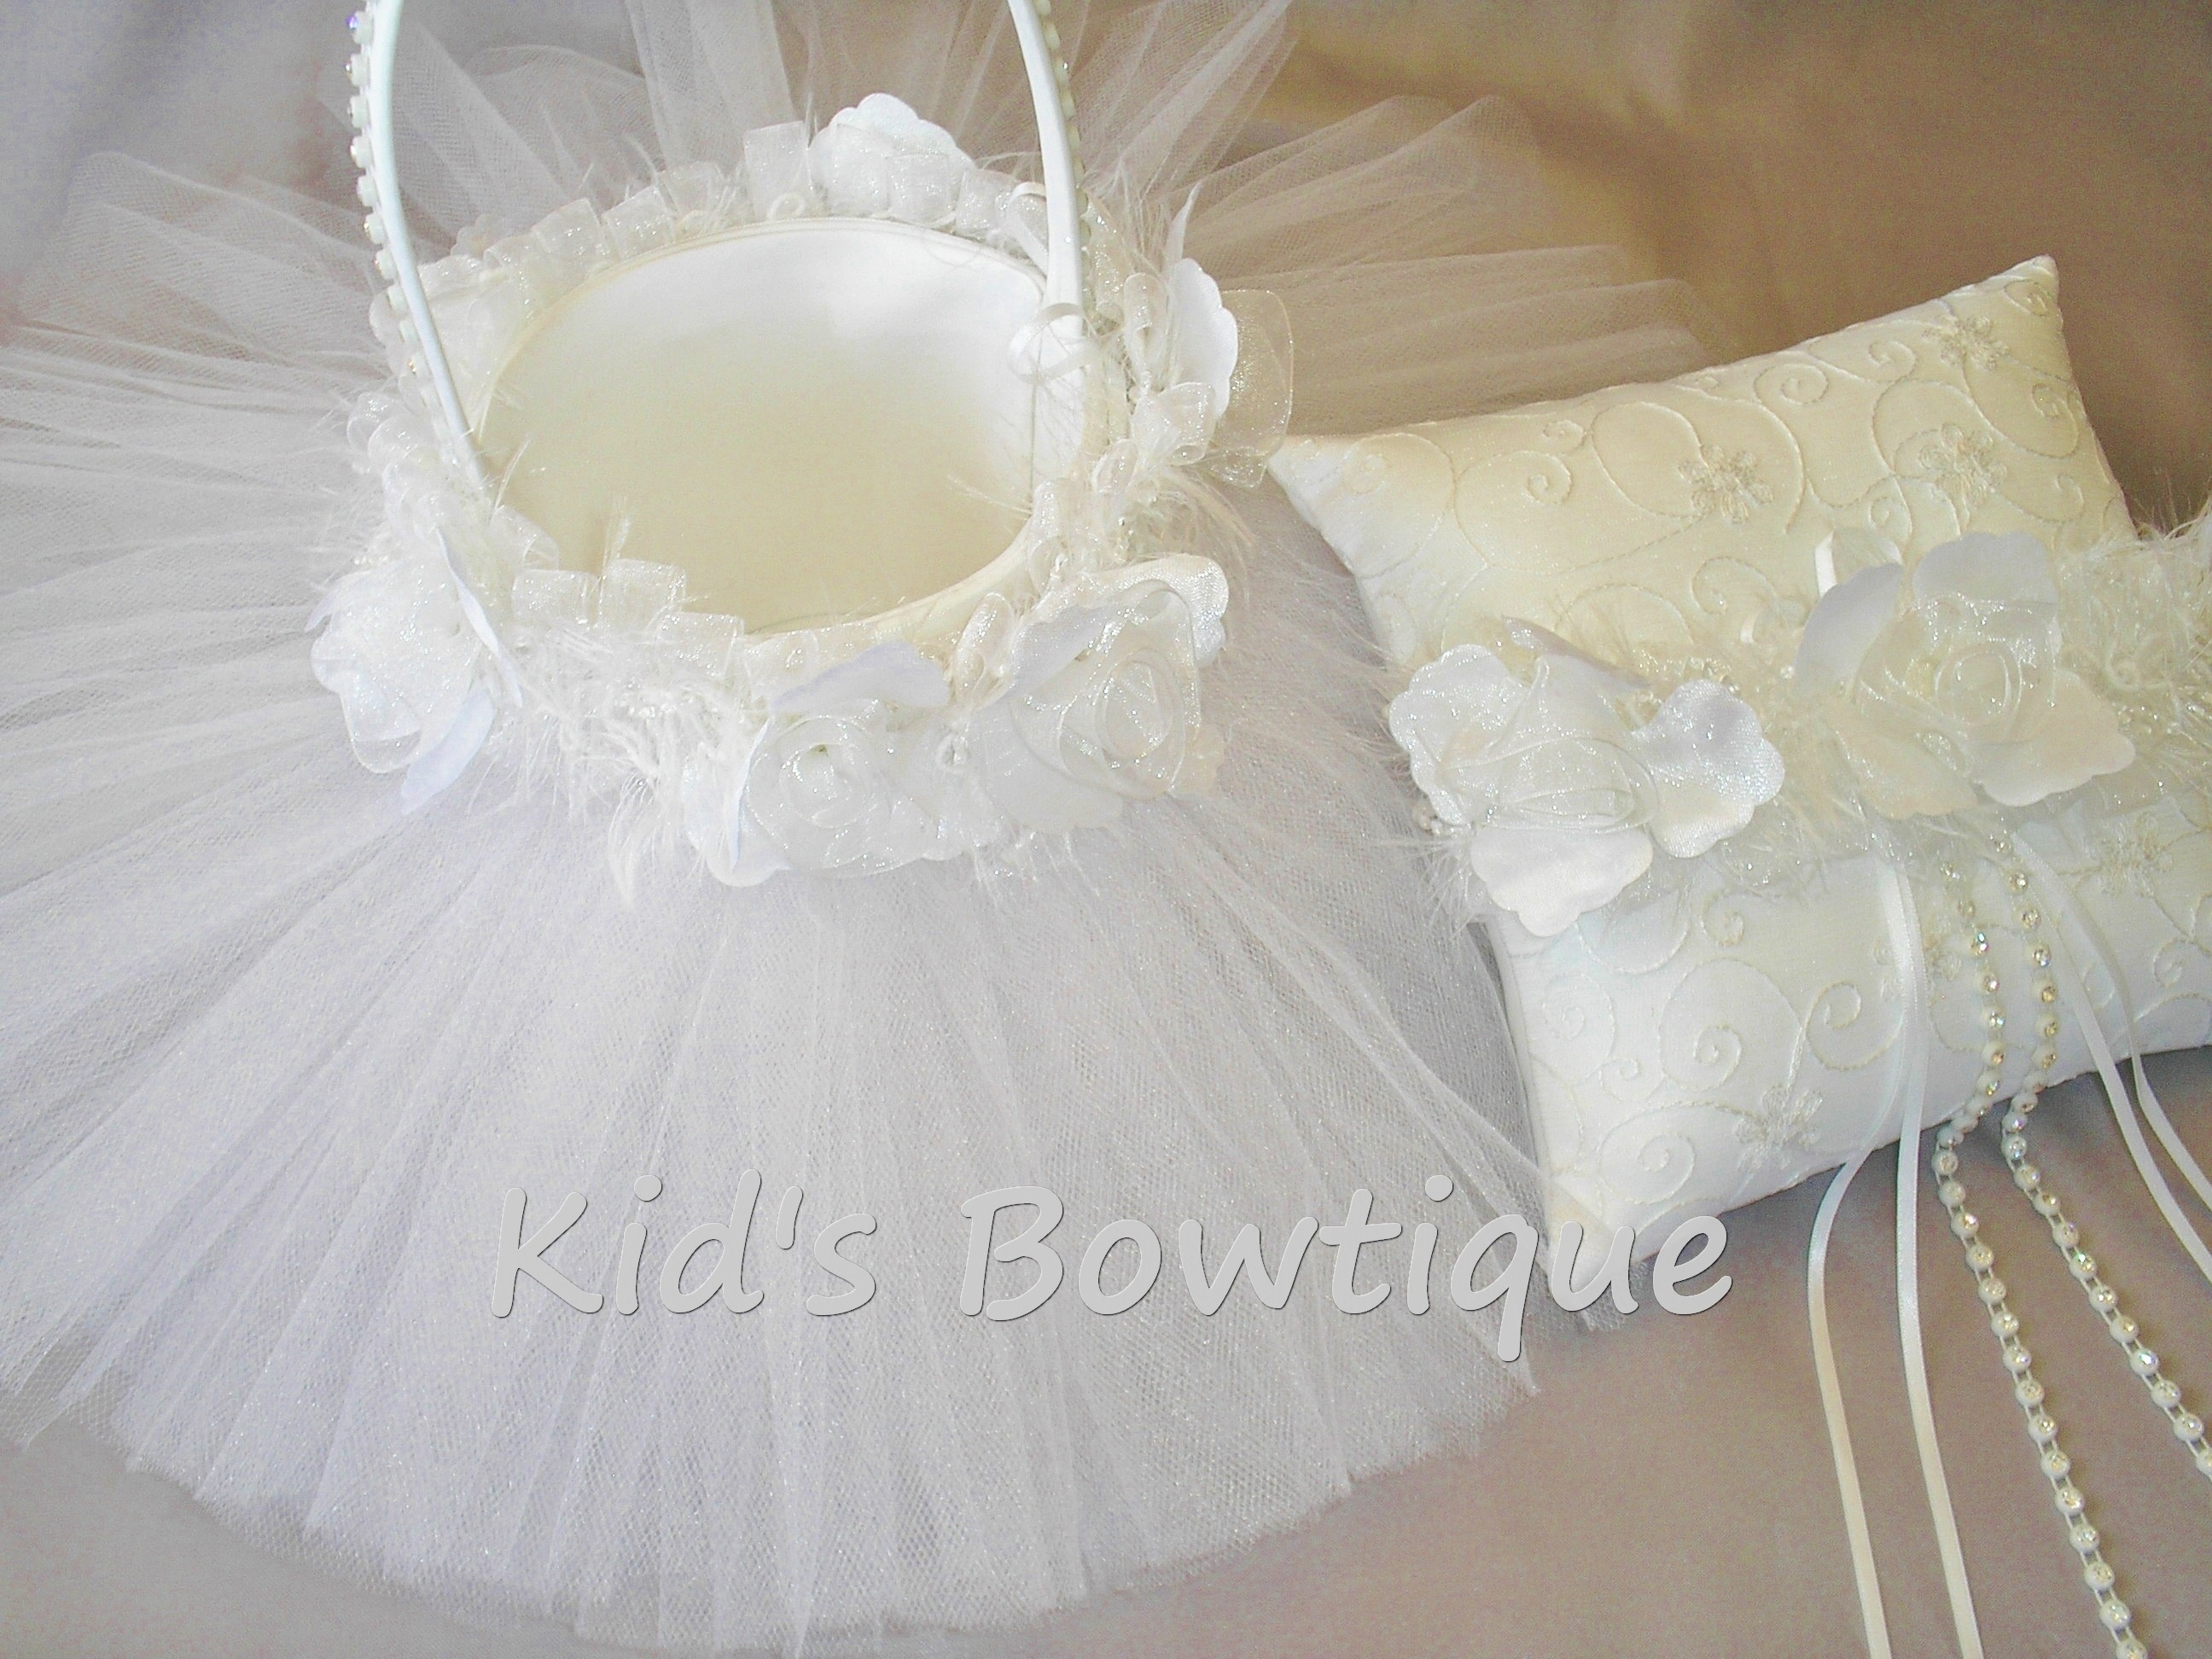 Wedding Flower Girl Tutu and Roses Trim Basket with Matching Ring Bearer Pillow Item#FBP1